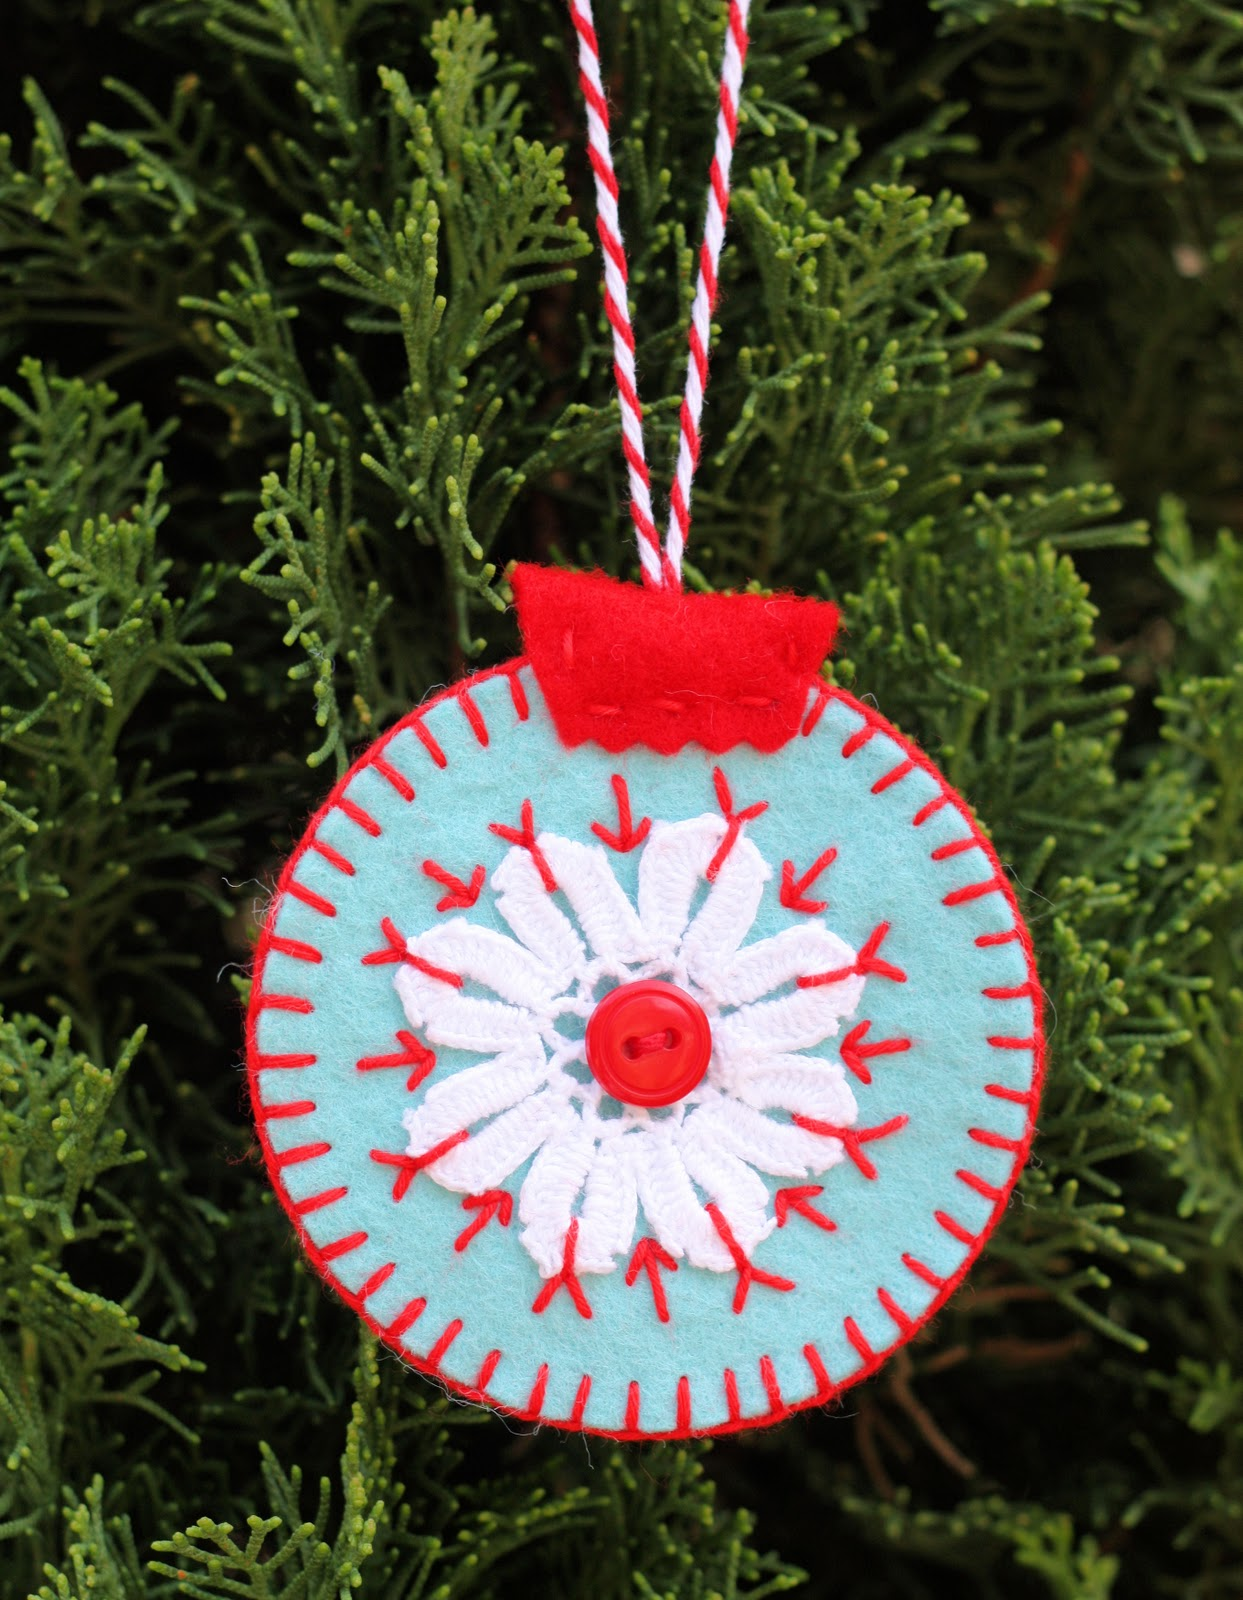 Homemade Christmas Ornaments - A Spoonful of Sugar